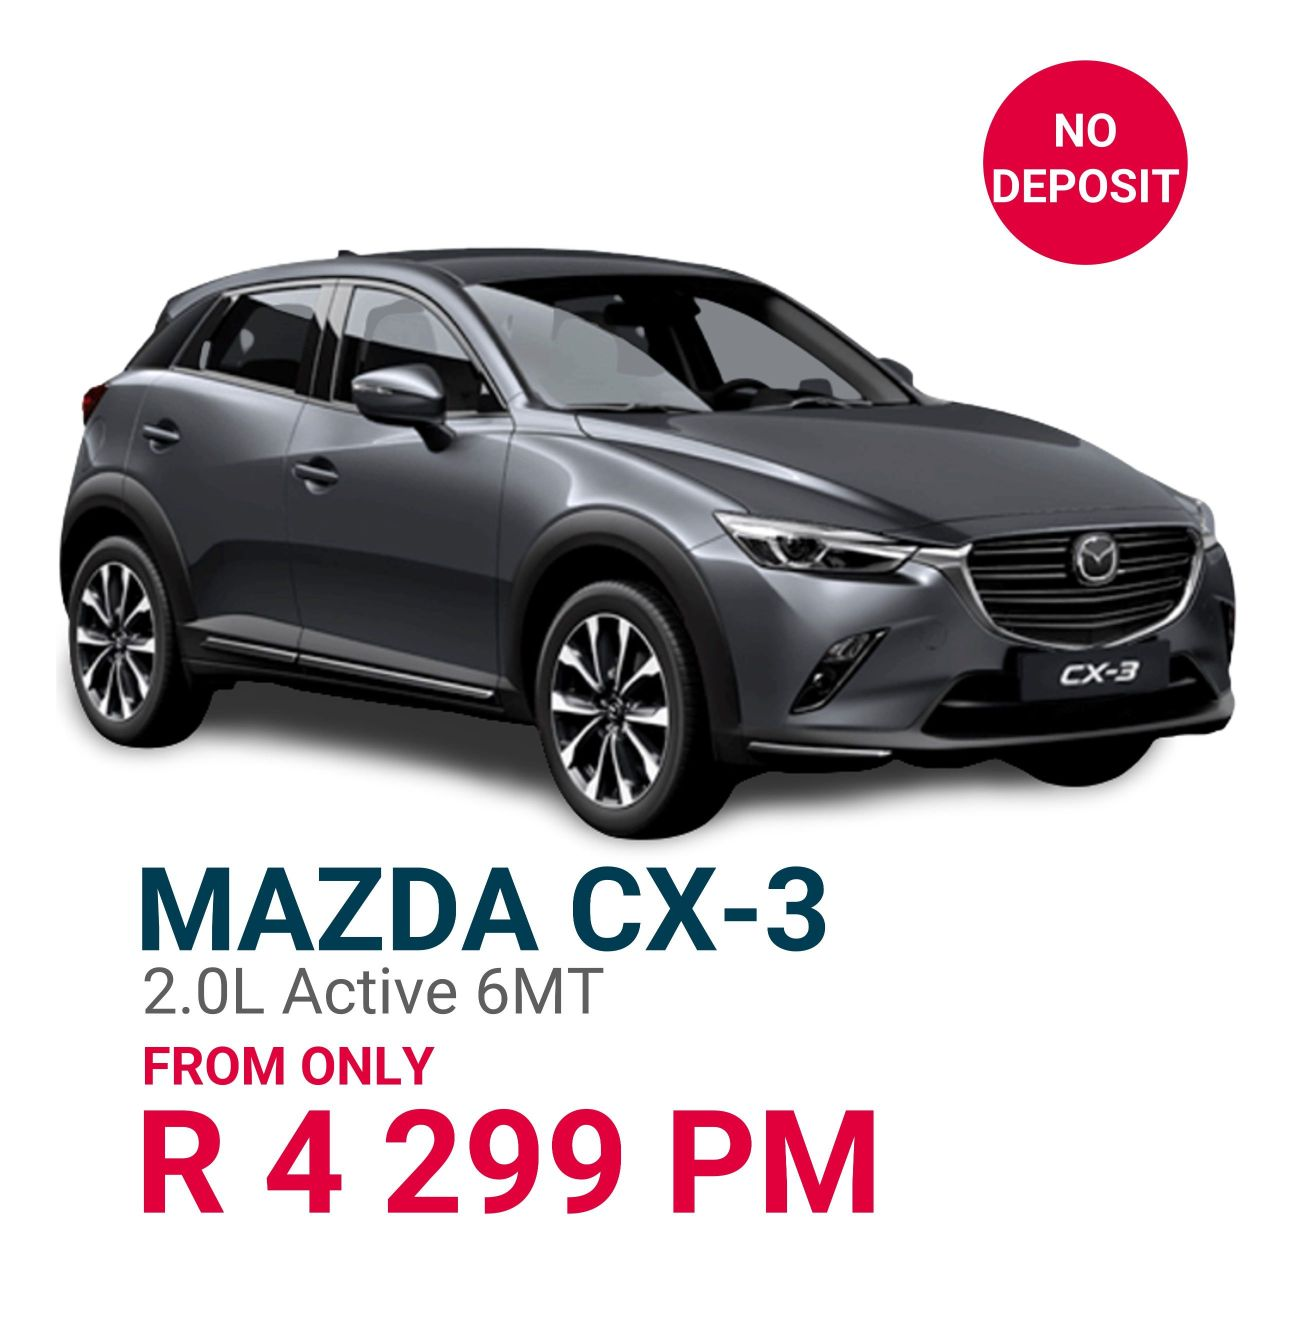 mazda-cx-3-2-0l-active-from-only-r4-299pm